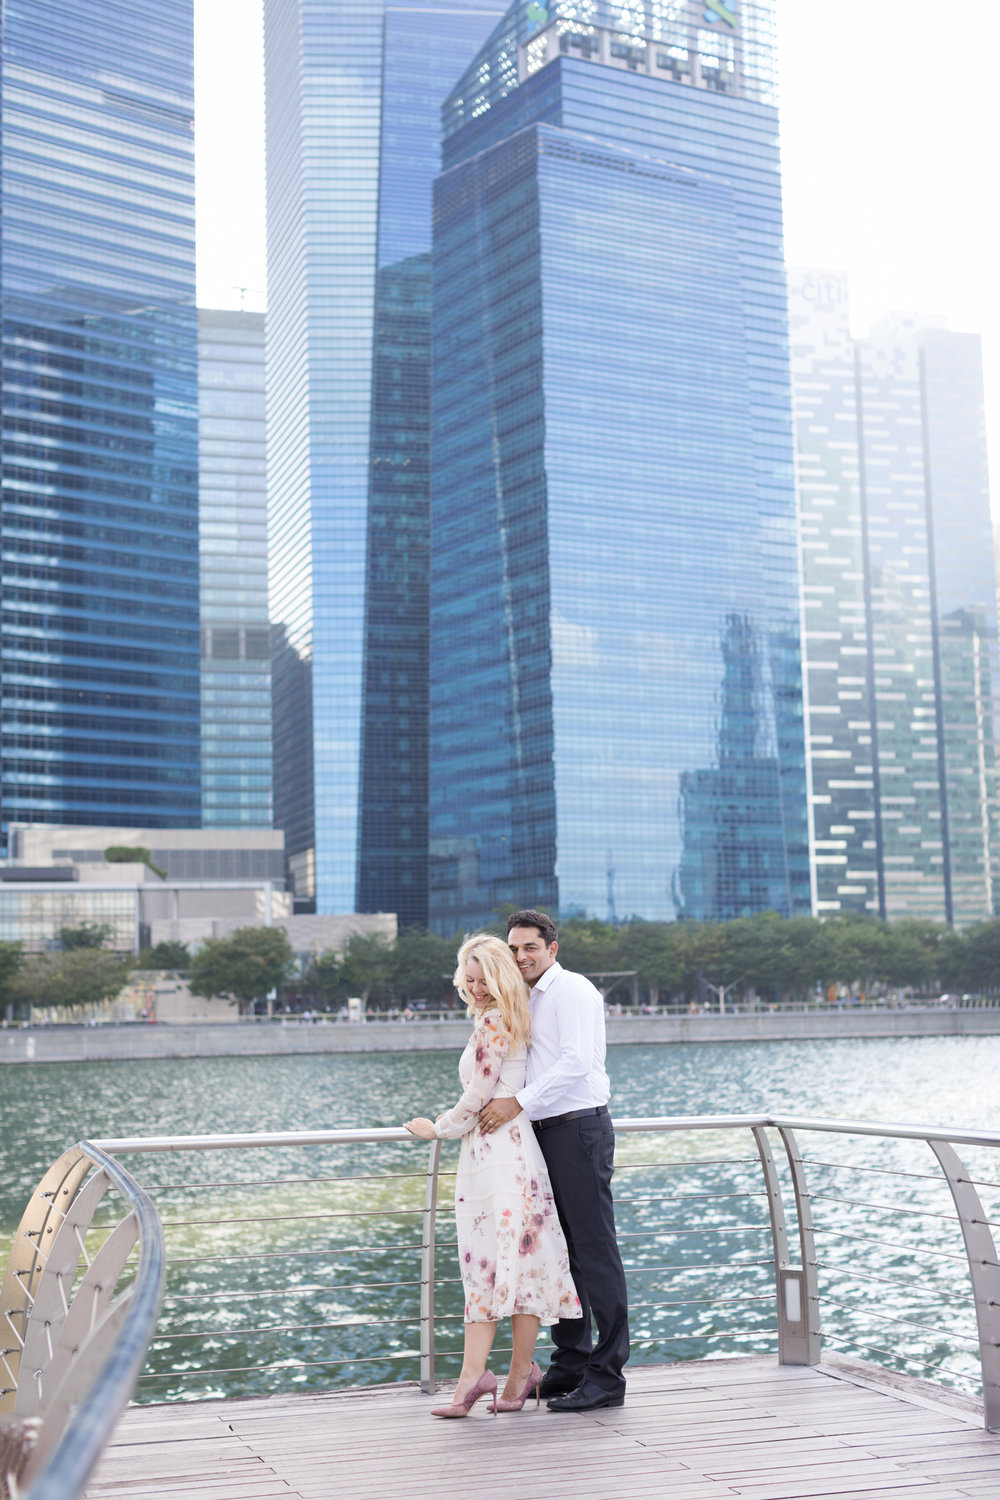 marina-bay-sands- couple-photoshoot-family-photographer-singapore-natural-light-photographer-candid-authentic-svensk-fotograf-singapore best photographer in singapore